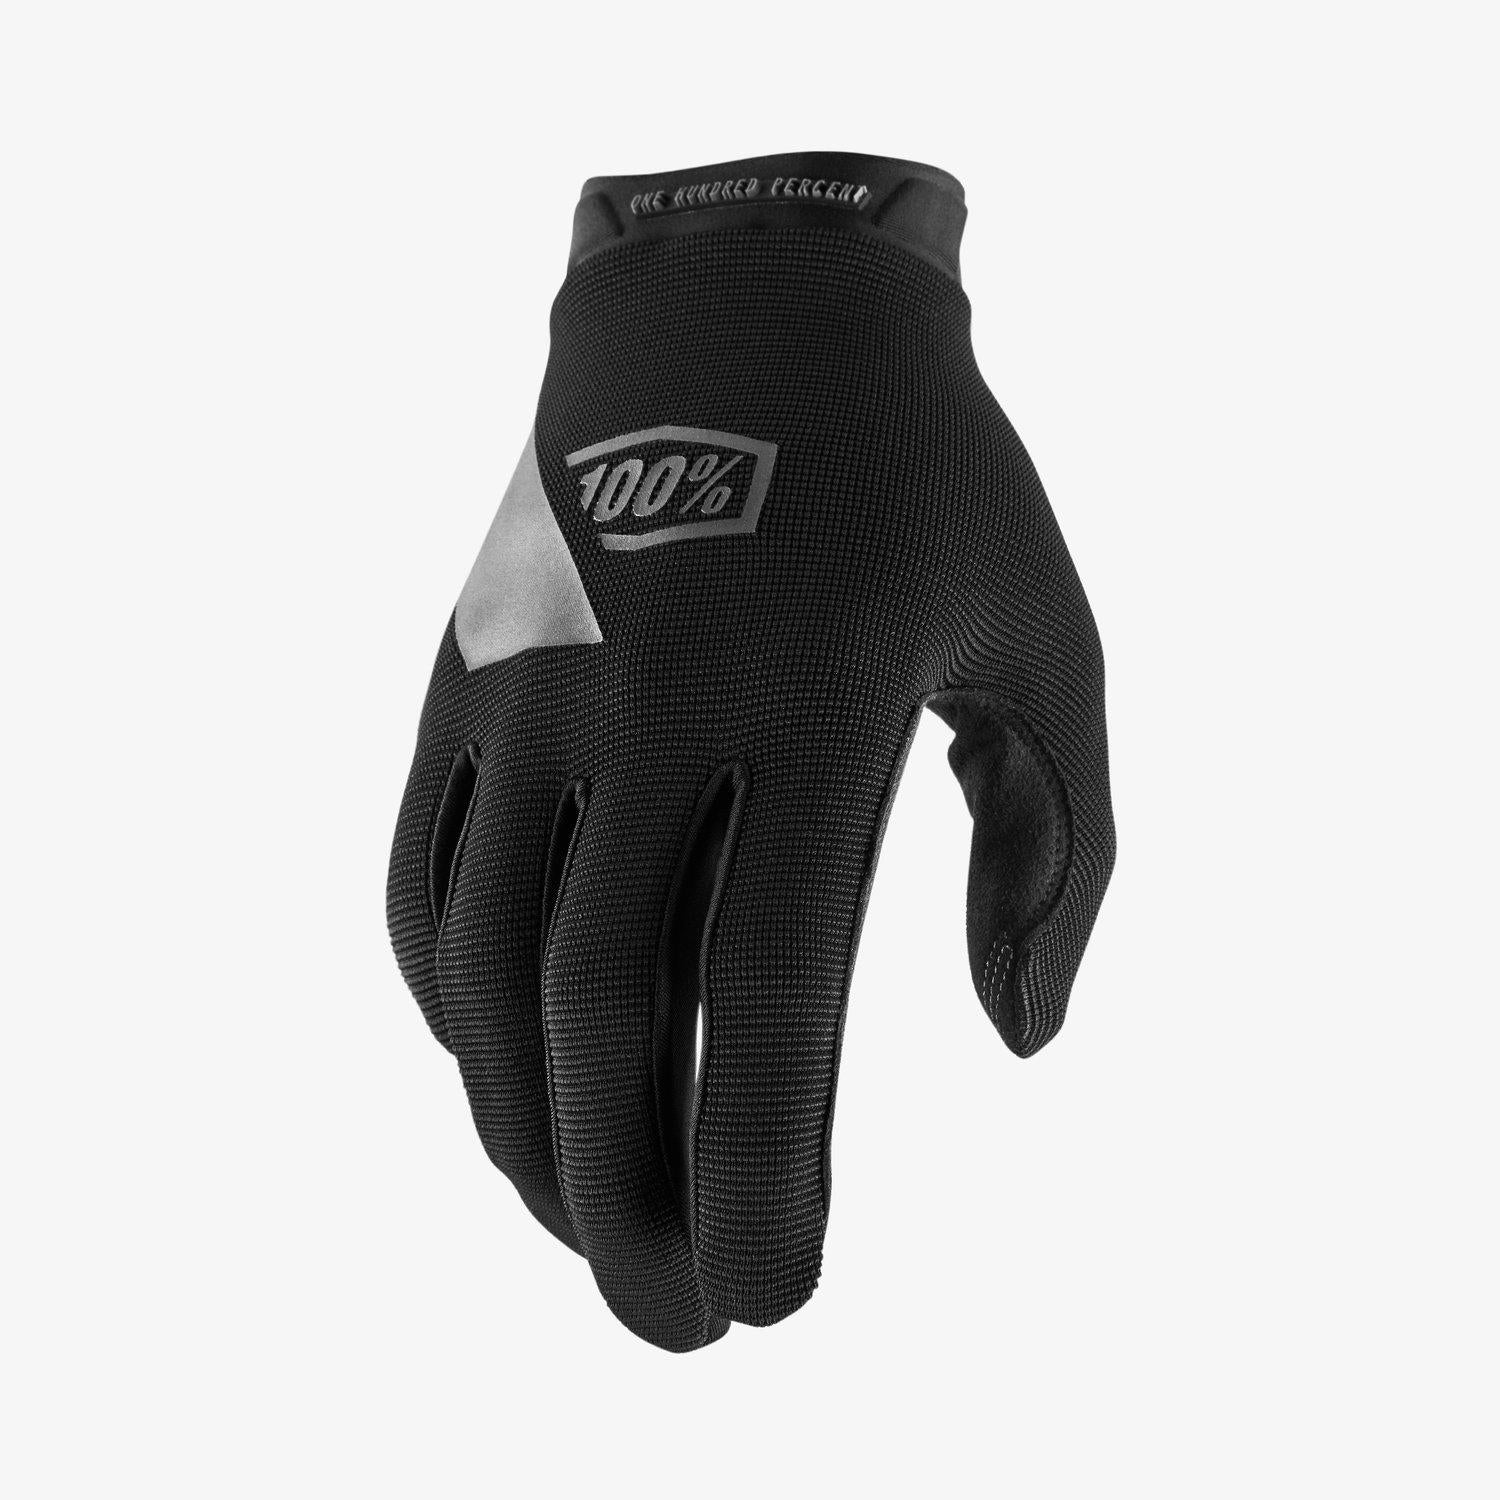 100% Ridecamp Race Gloves - Black